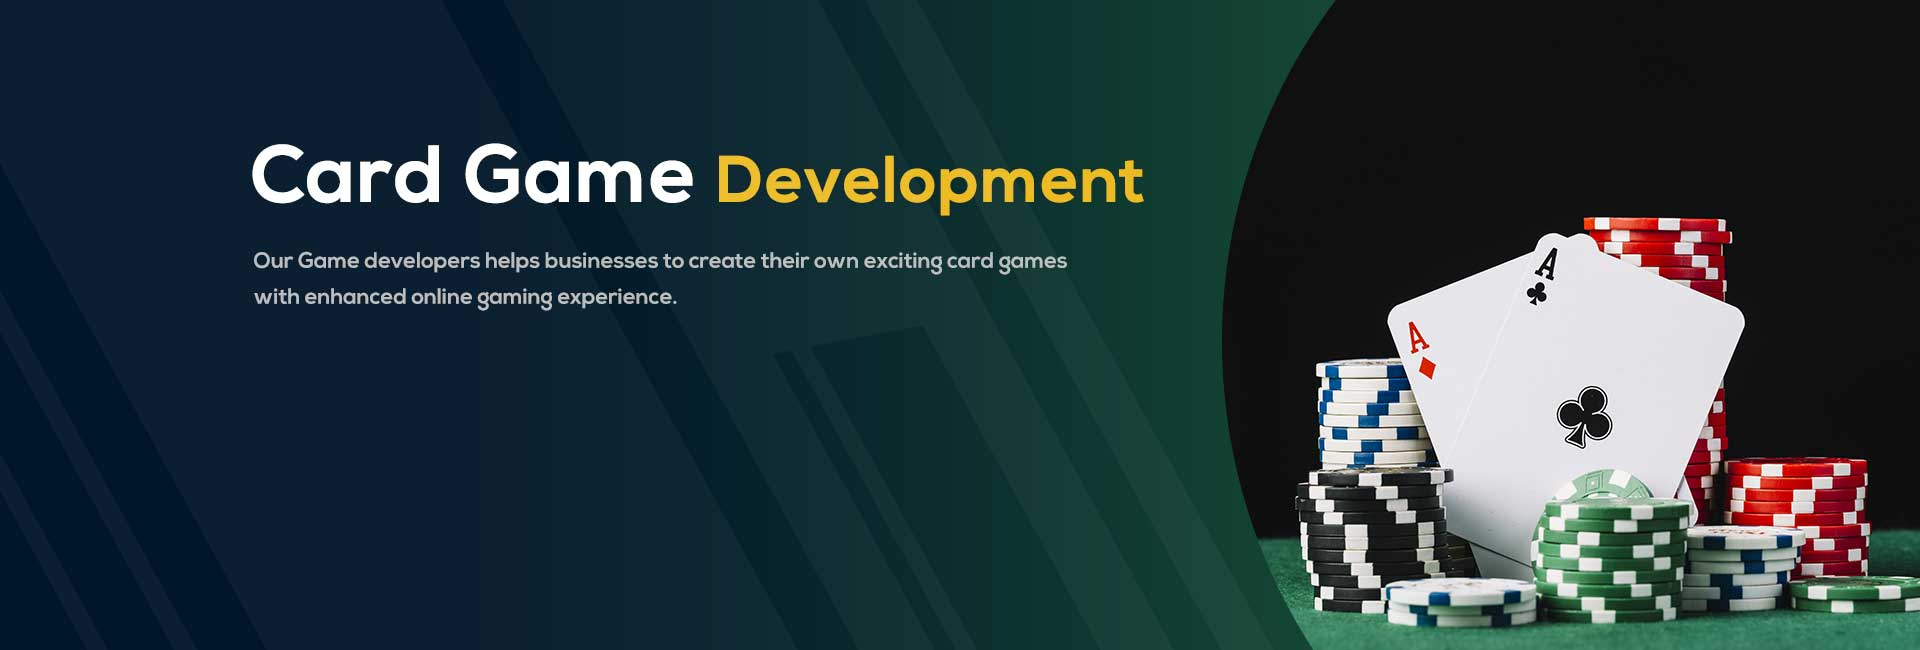 Trustworthy Card Game Development Company